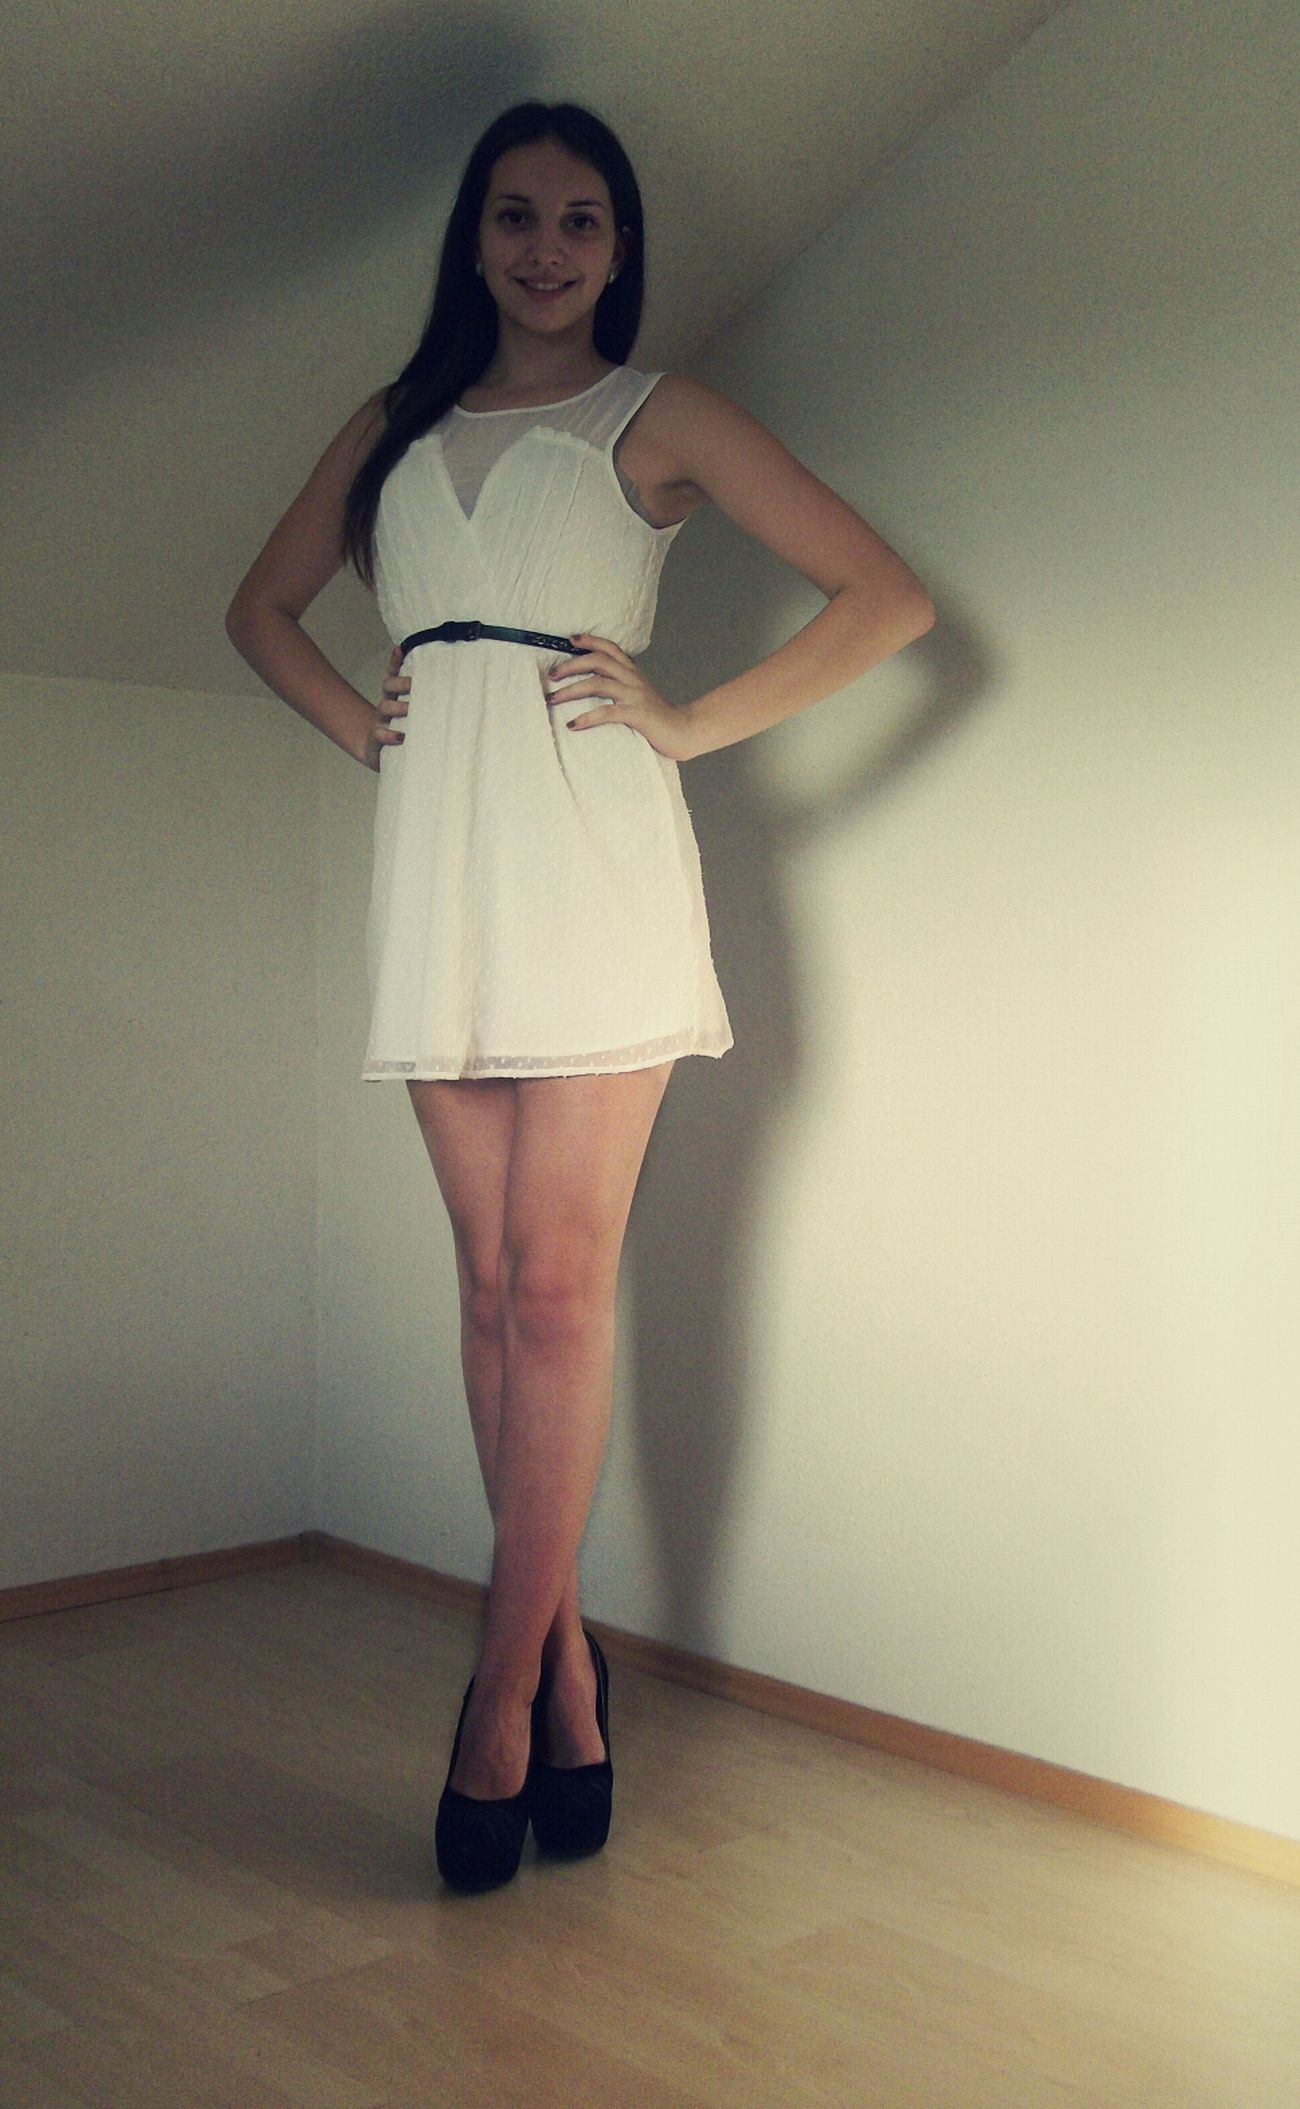 Me In A White Dress And Black Shoes